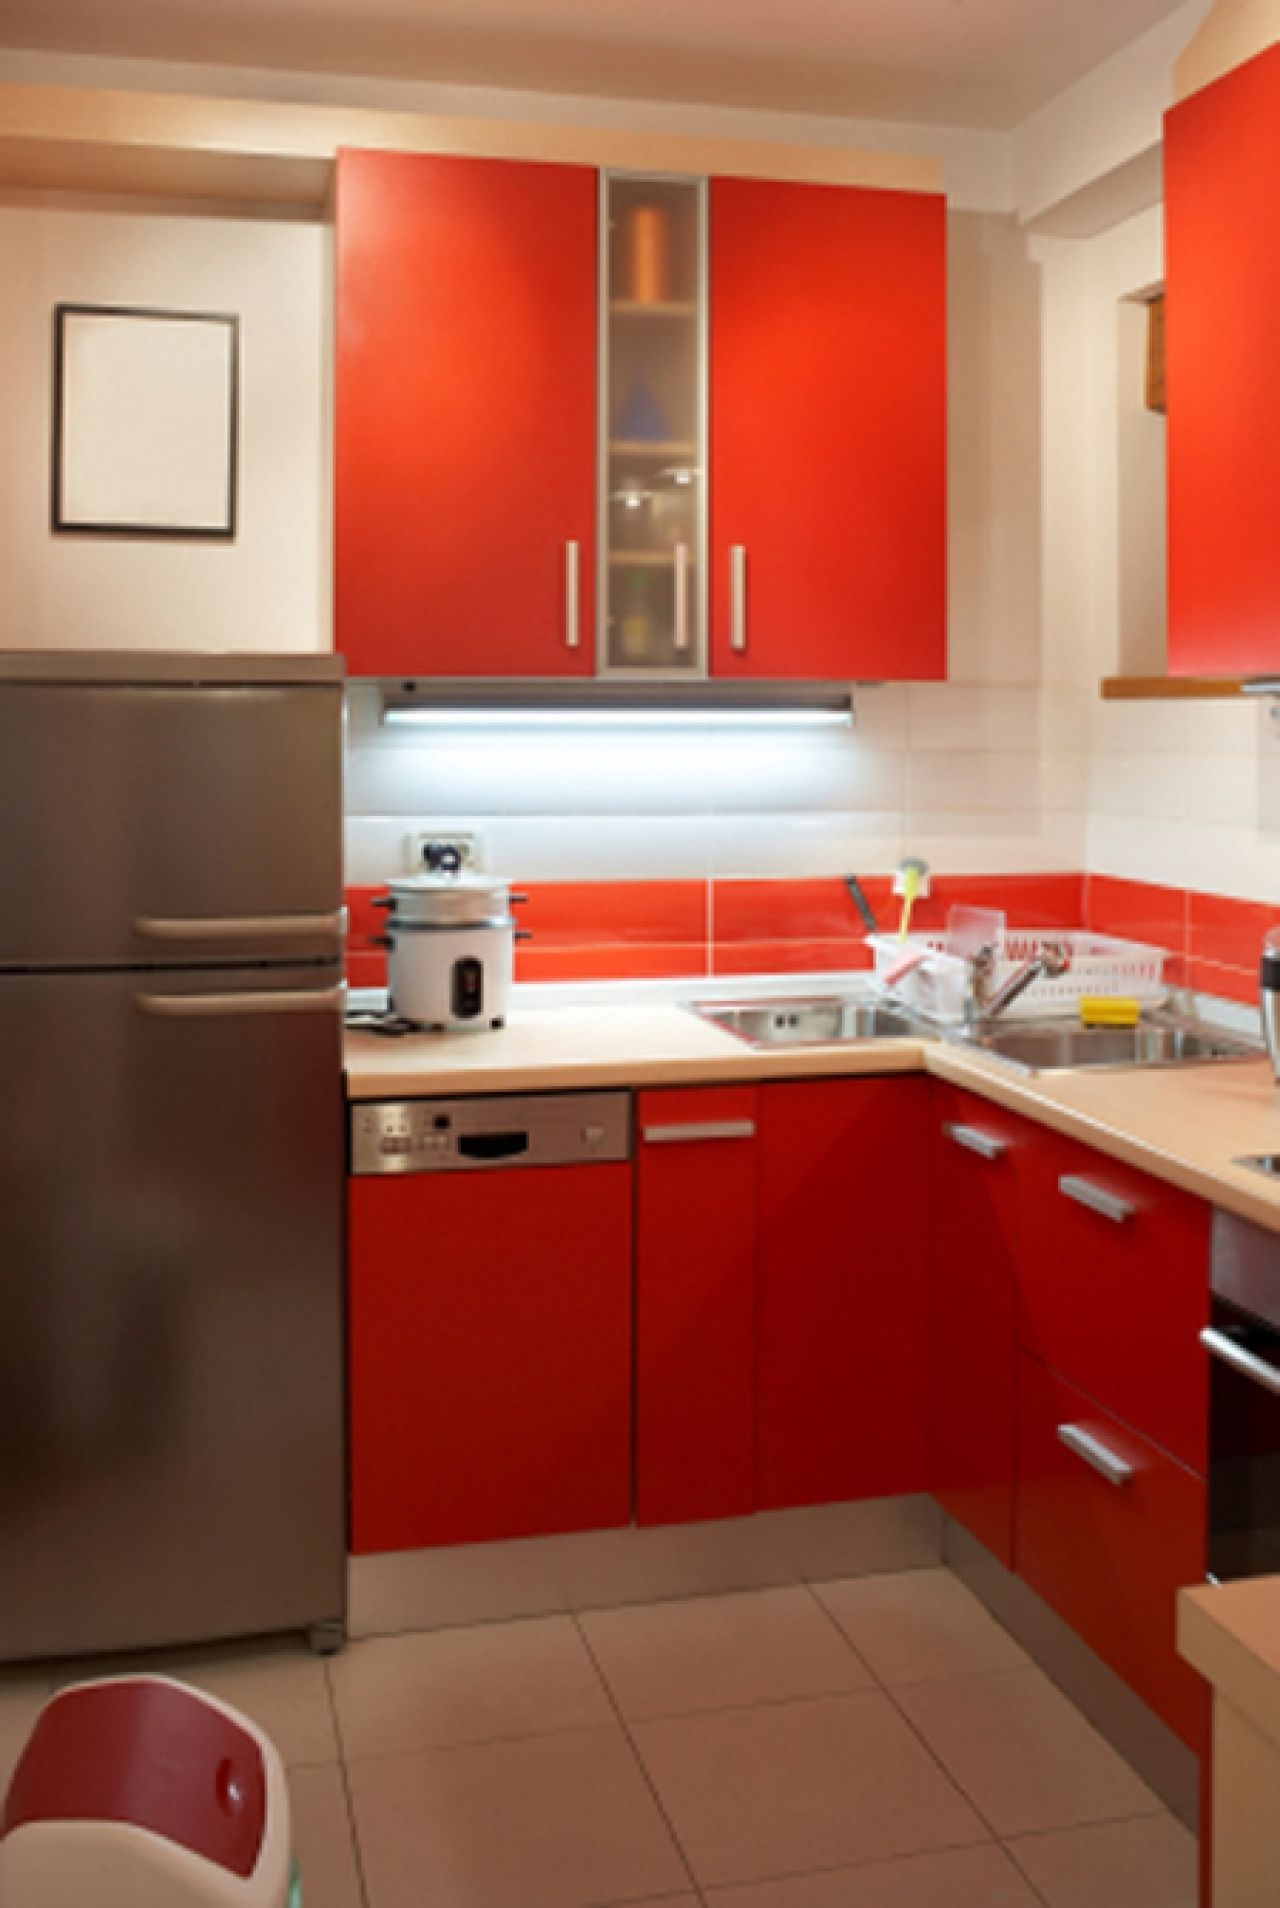 Kitchen Interior Design For Small Spaces In India With Images